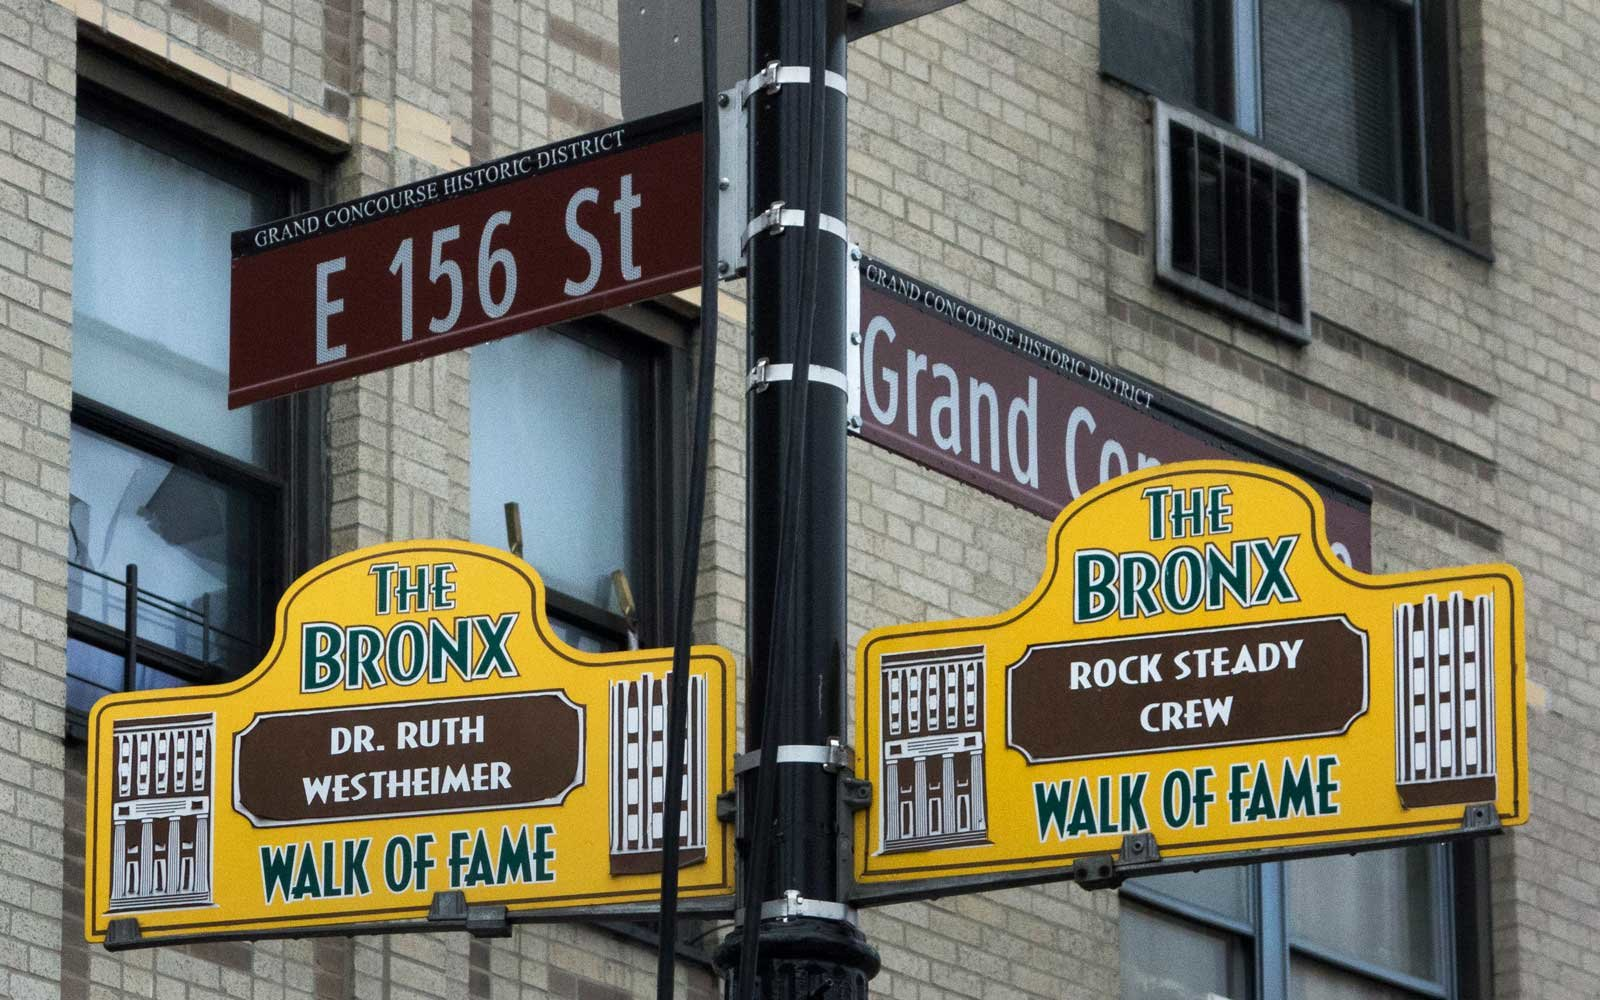 Signs honoring Hip-Hop pioneers Rock Steady Crew and US sex therapist Dr. Ruth Westheimer hang from a lamp post as part of the Bronx Walk of Fame in the Bronx on March 7, 2017 in New York.